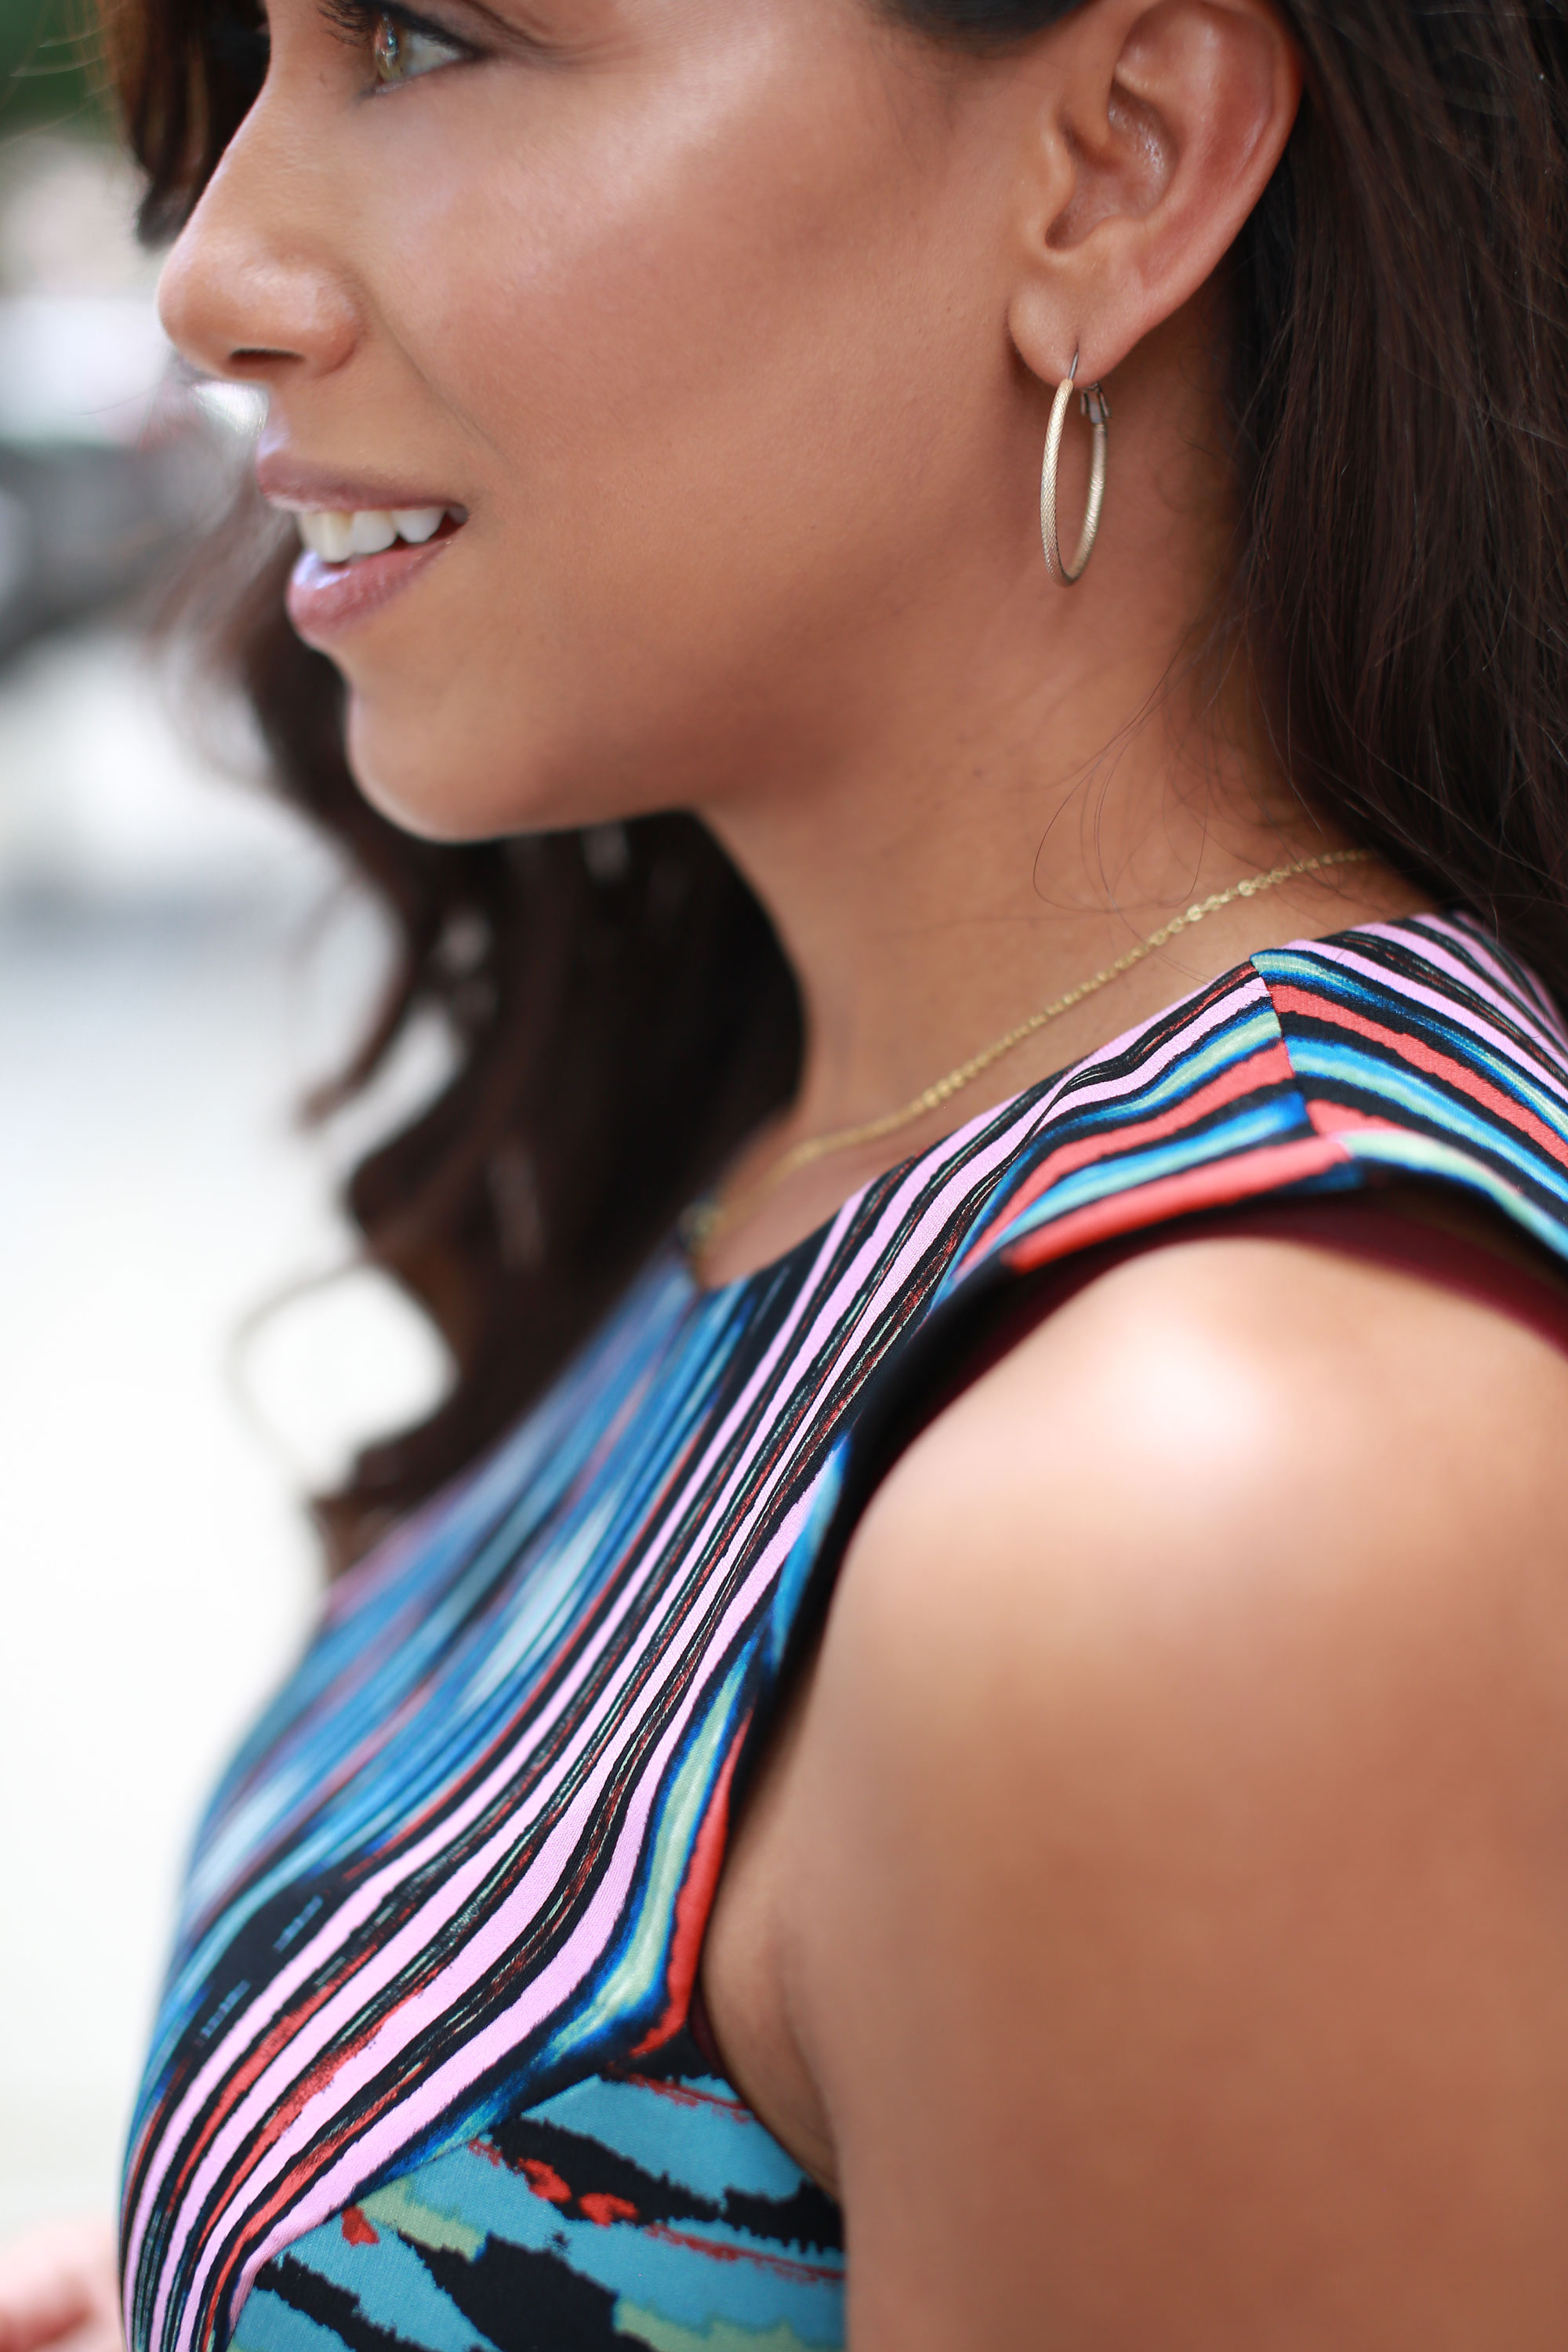 THE EARRINGS - Reach for your favorite not too big, but not too small wear-with-anything hoops. Keep the rest of your jewelry simple and light to maximize work-day comfort.